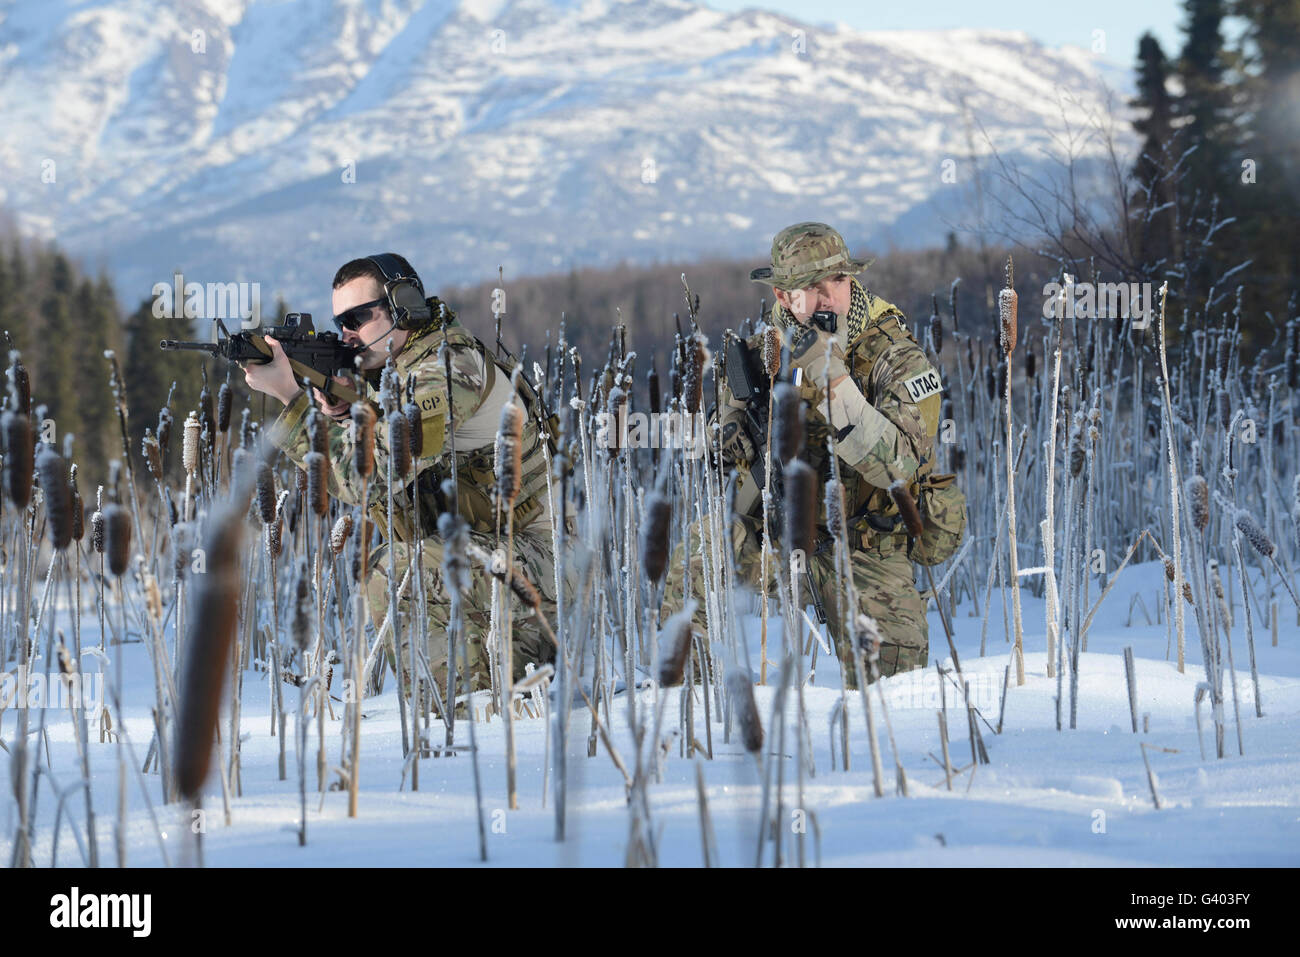 Members of the 3rd Air Support Operations Squadron simulate a patrol. - Stock Image